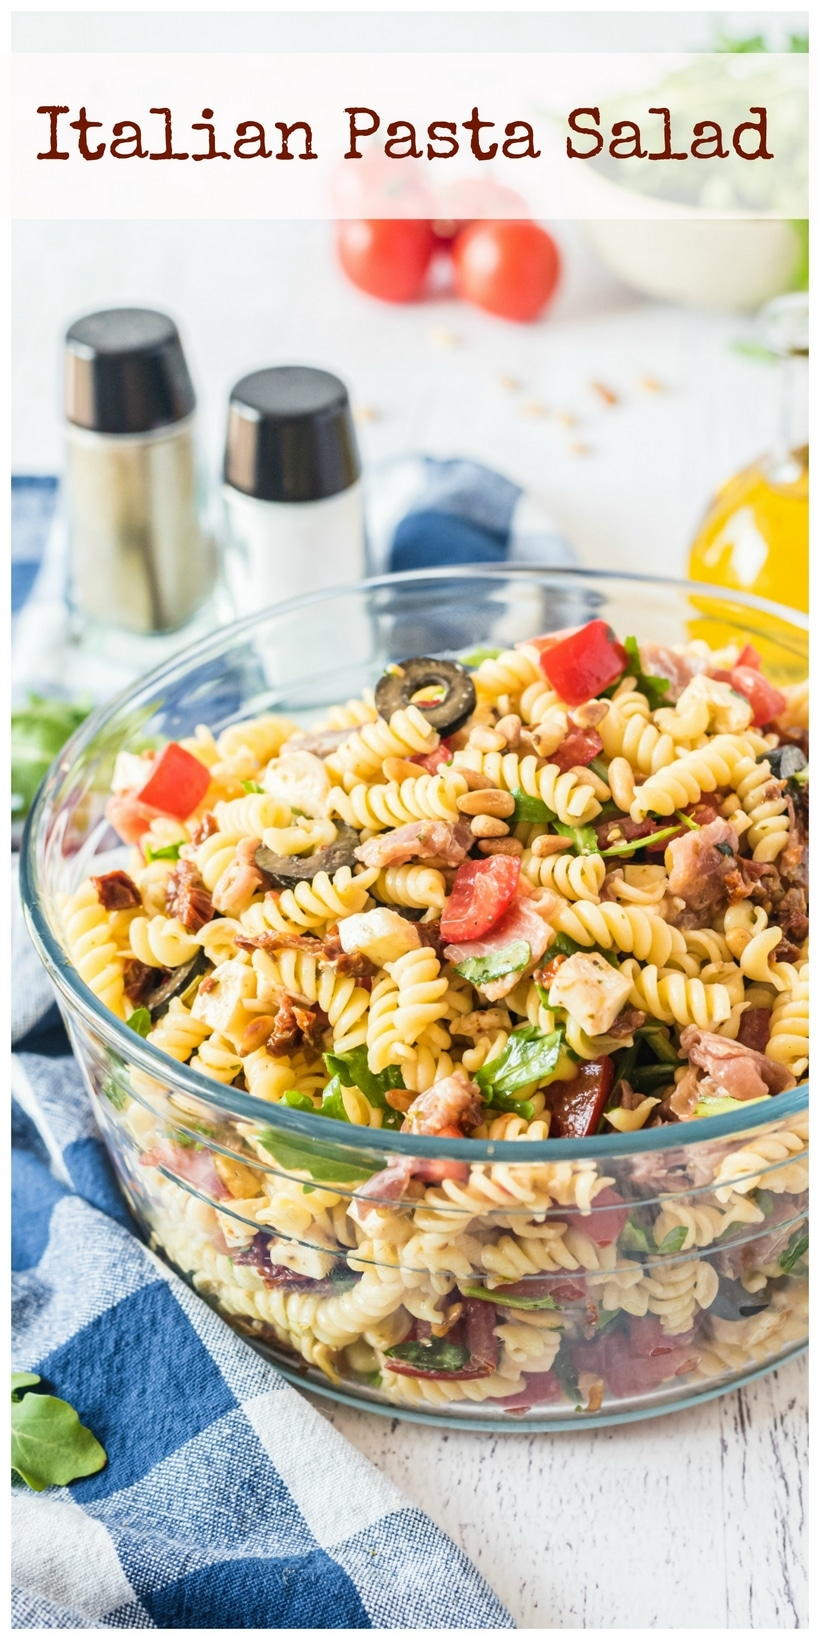 Text saying Italian Pasta Salad with pasta salad in the background